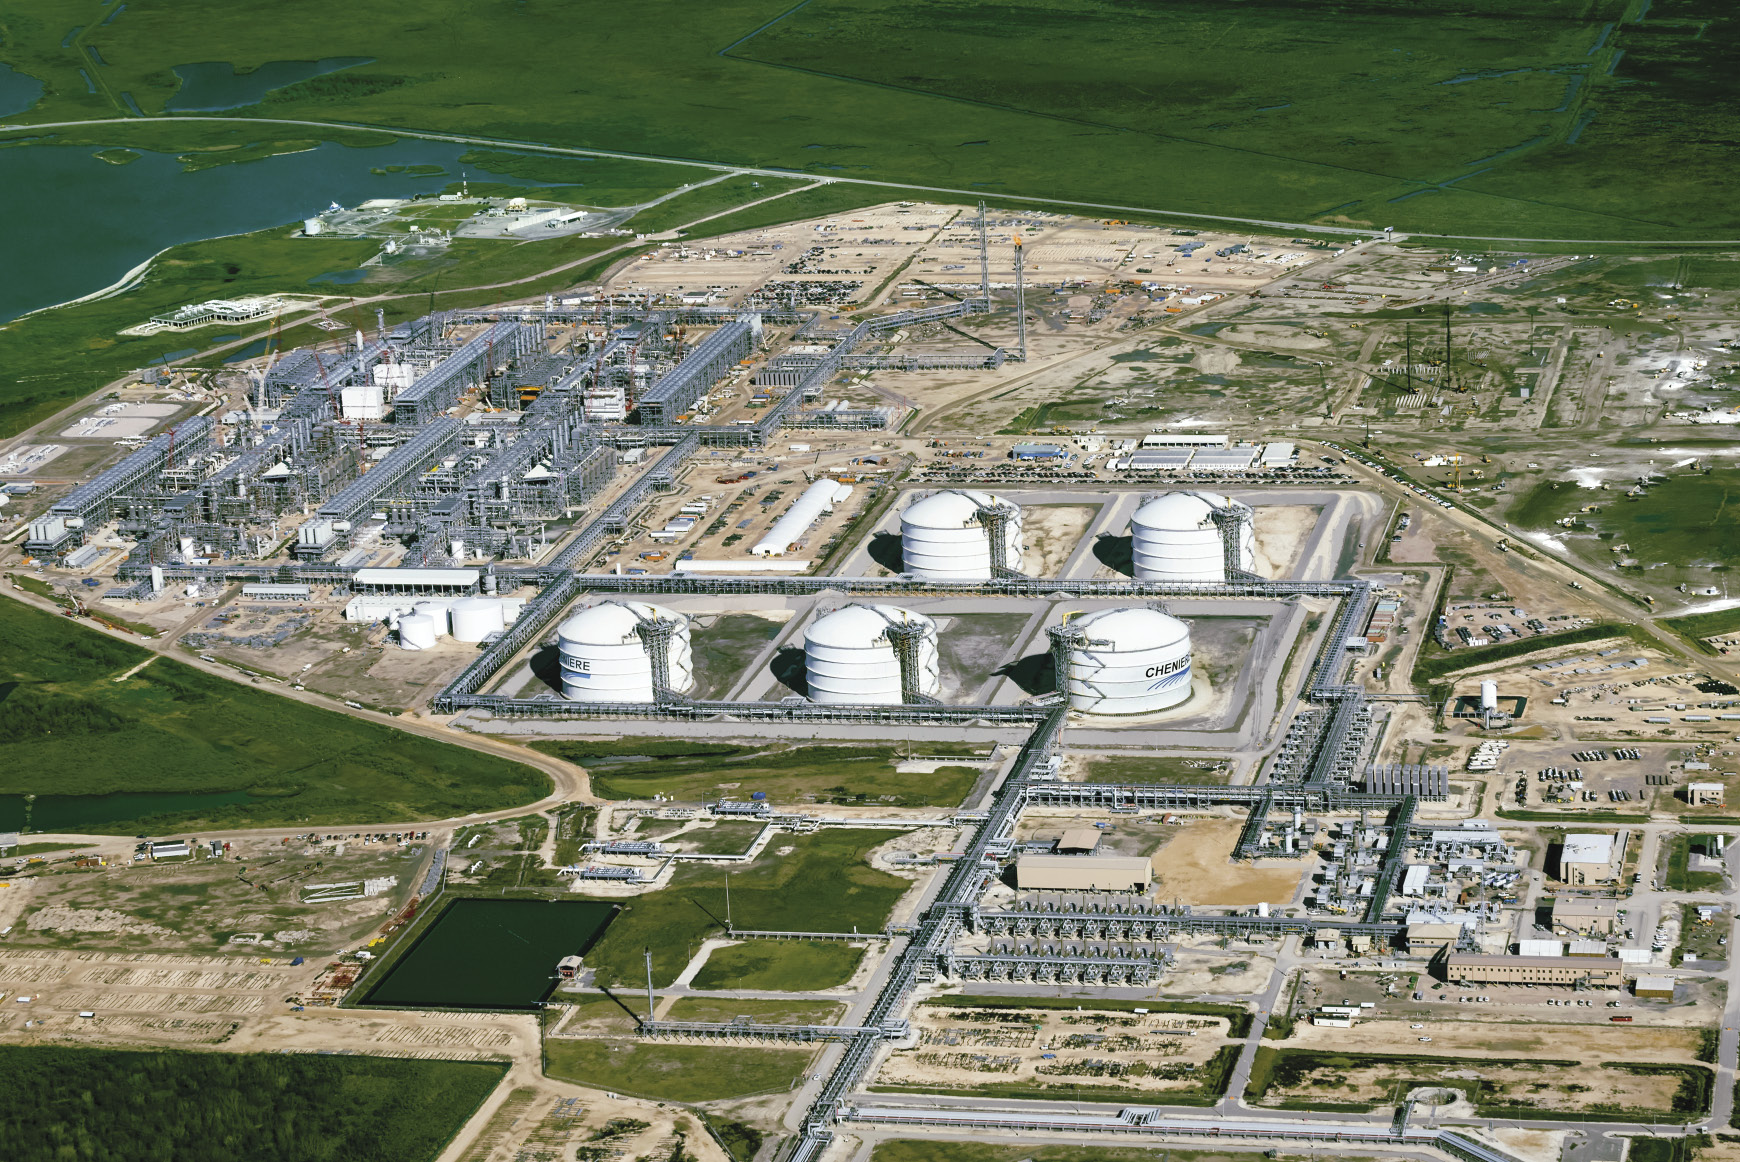 Arial view of the Sabine Pass Terminal in Lousiana